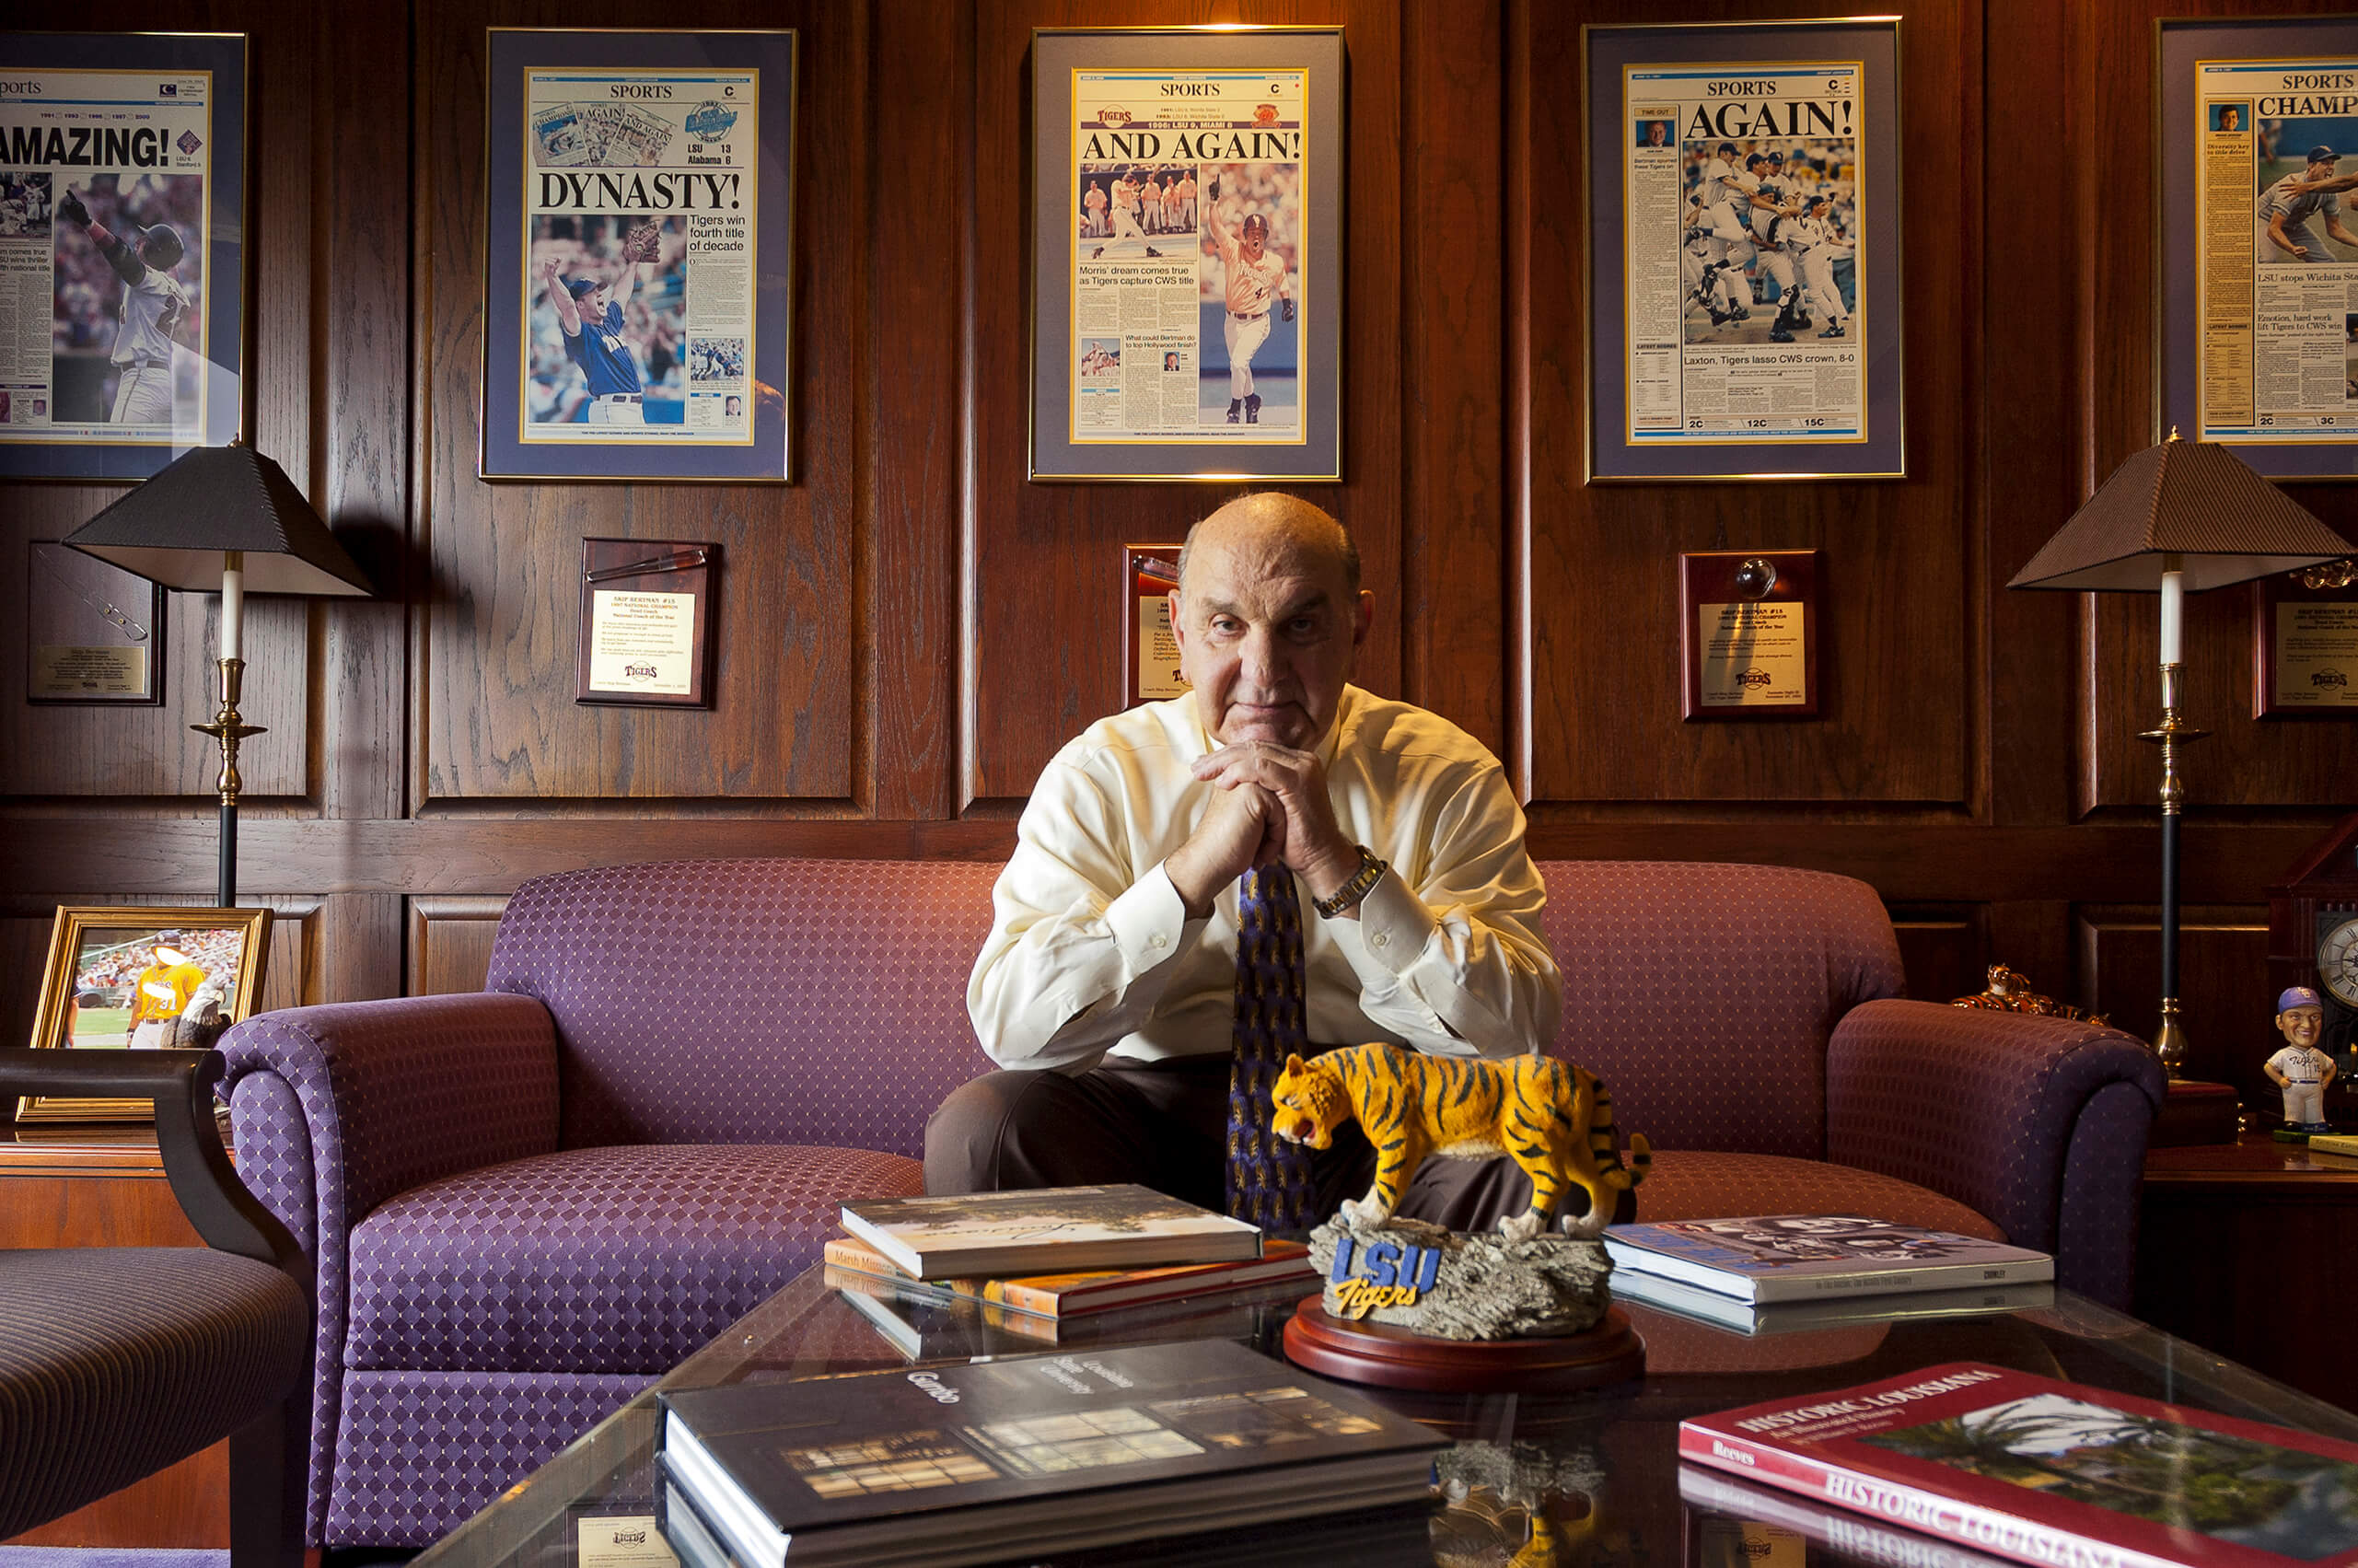 LSU Athletic Director Skip Bertman